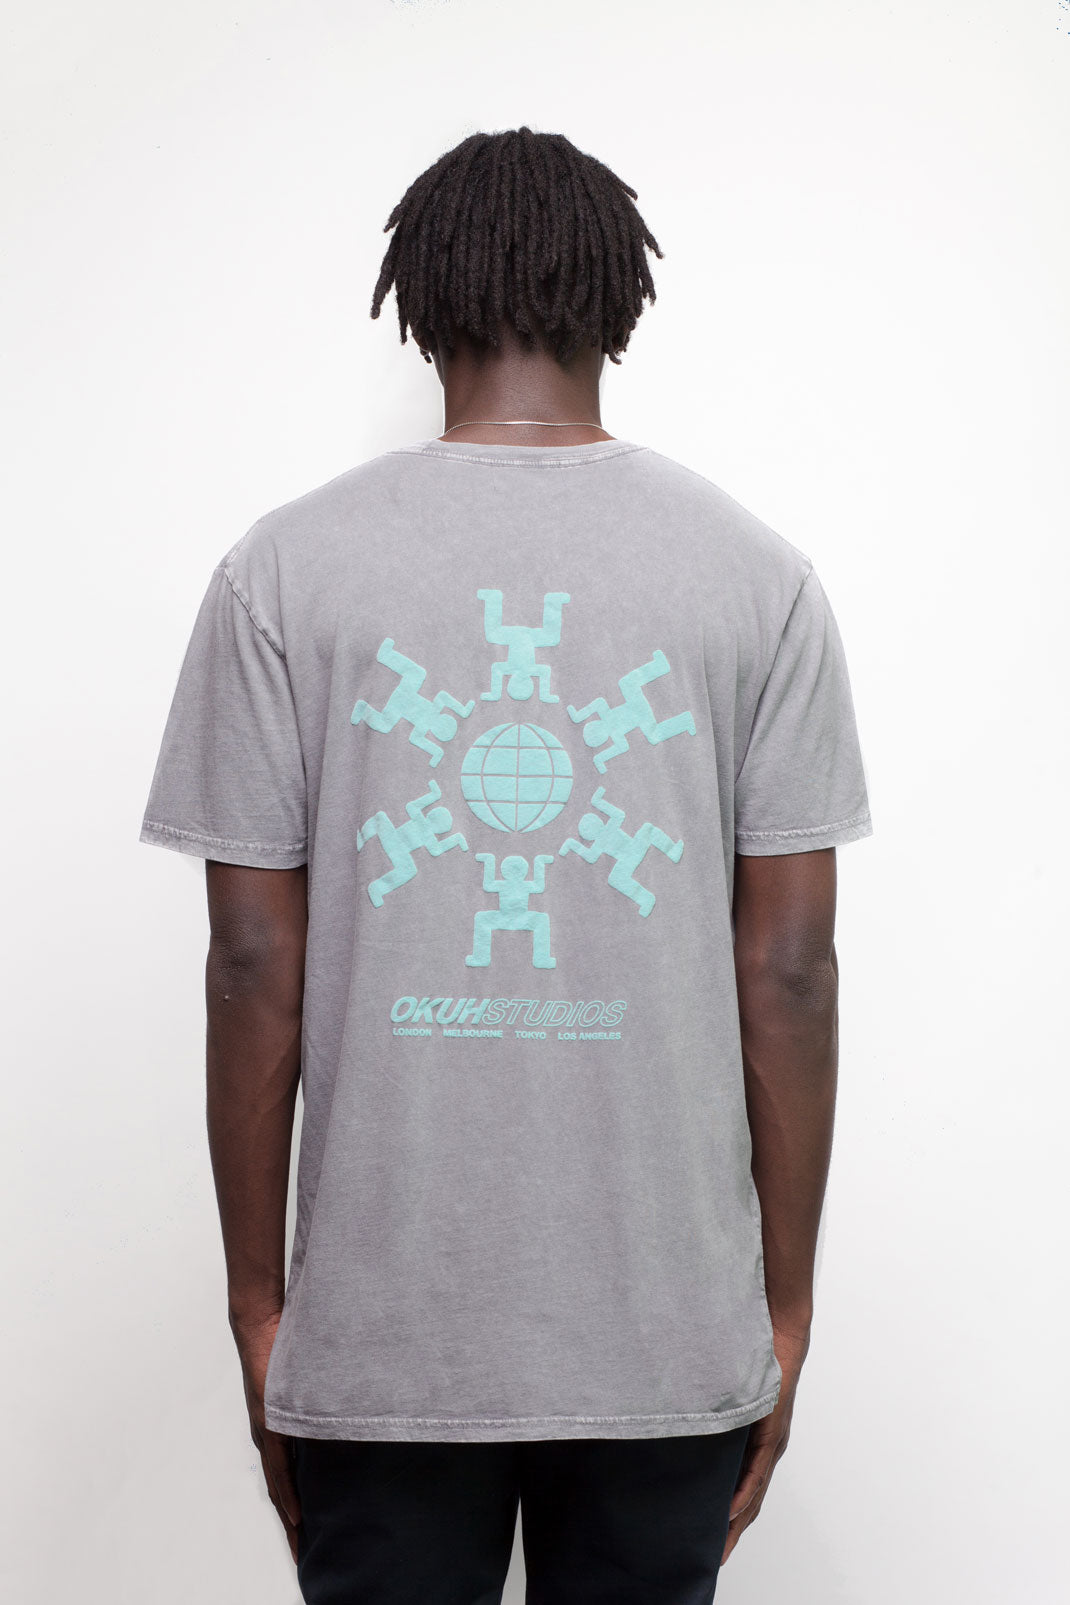 Grey Acid Was Globe T-Shirt - okuhstudios